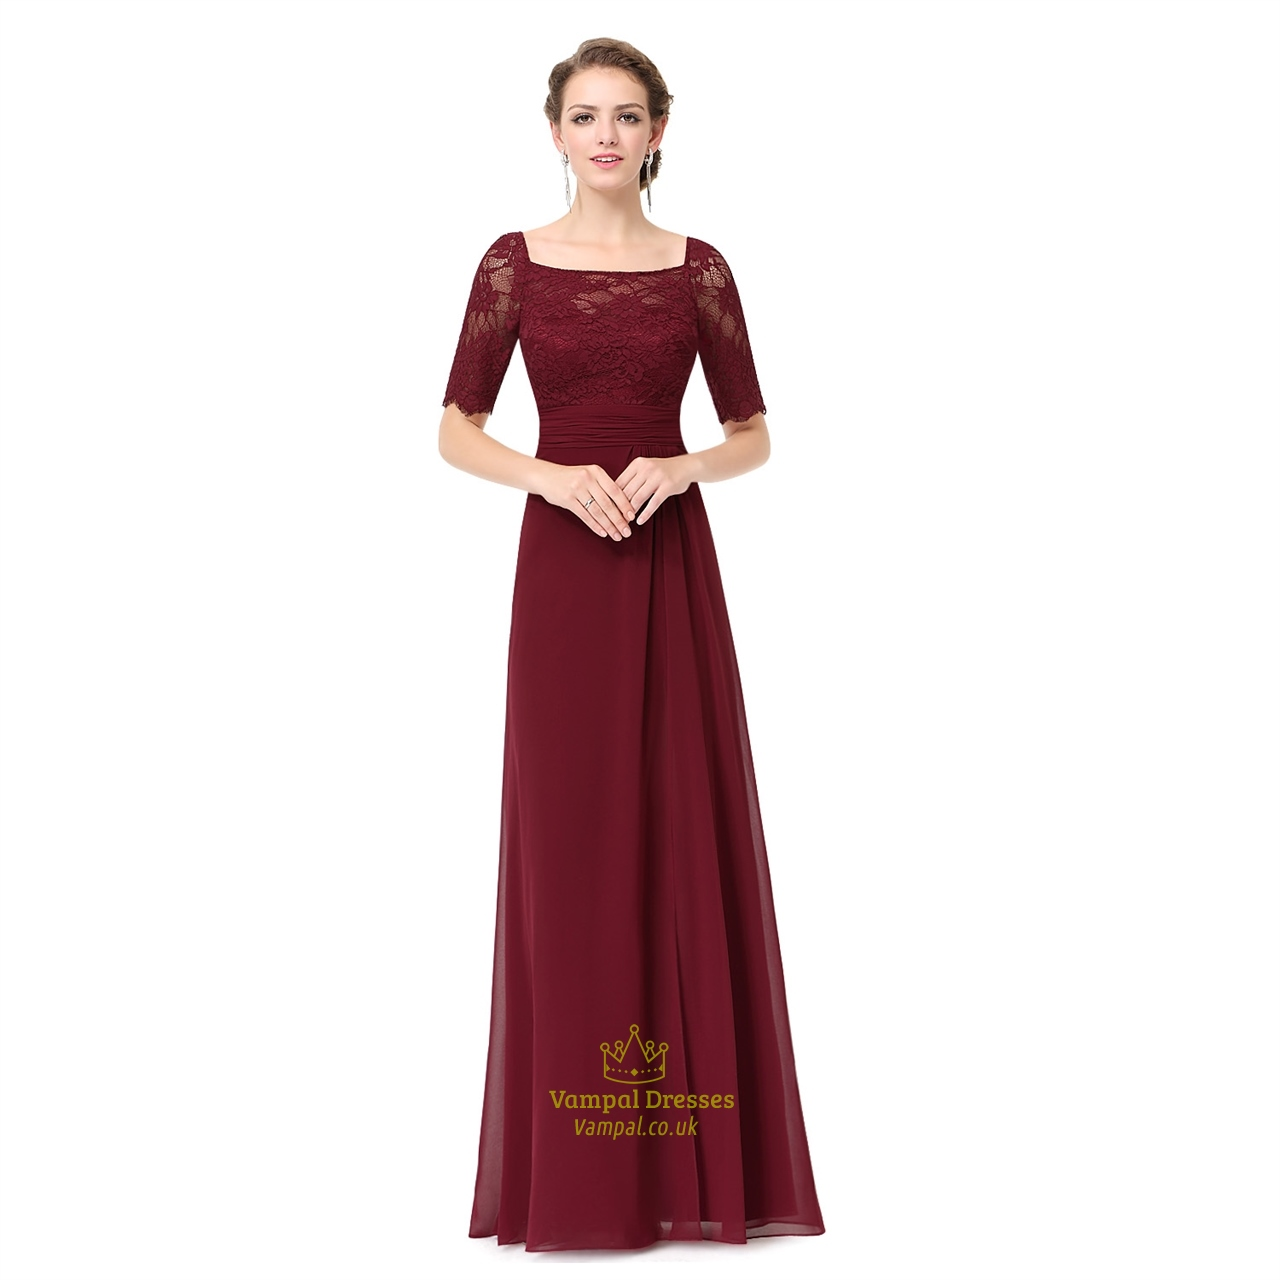 Burgundy Chiffon Lace Bodice Short Sleeves Bridesmaid Dress With ...